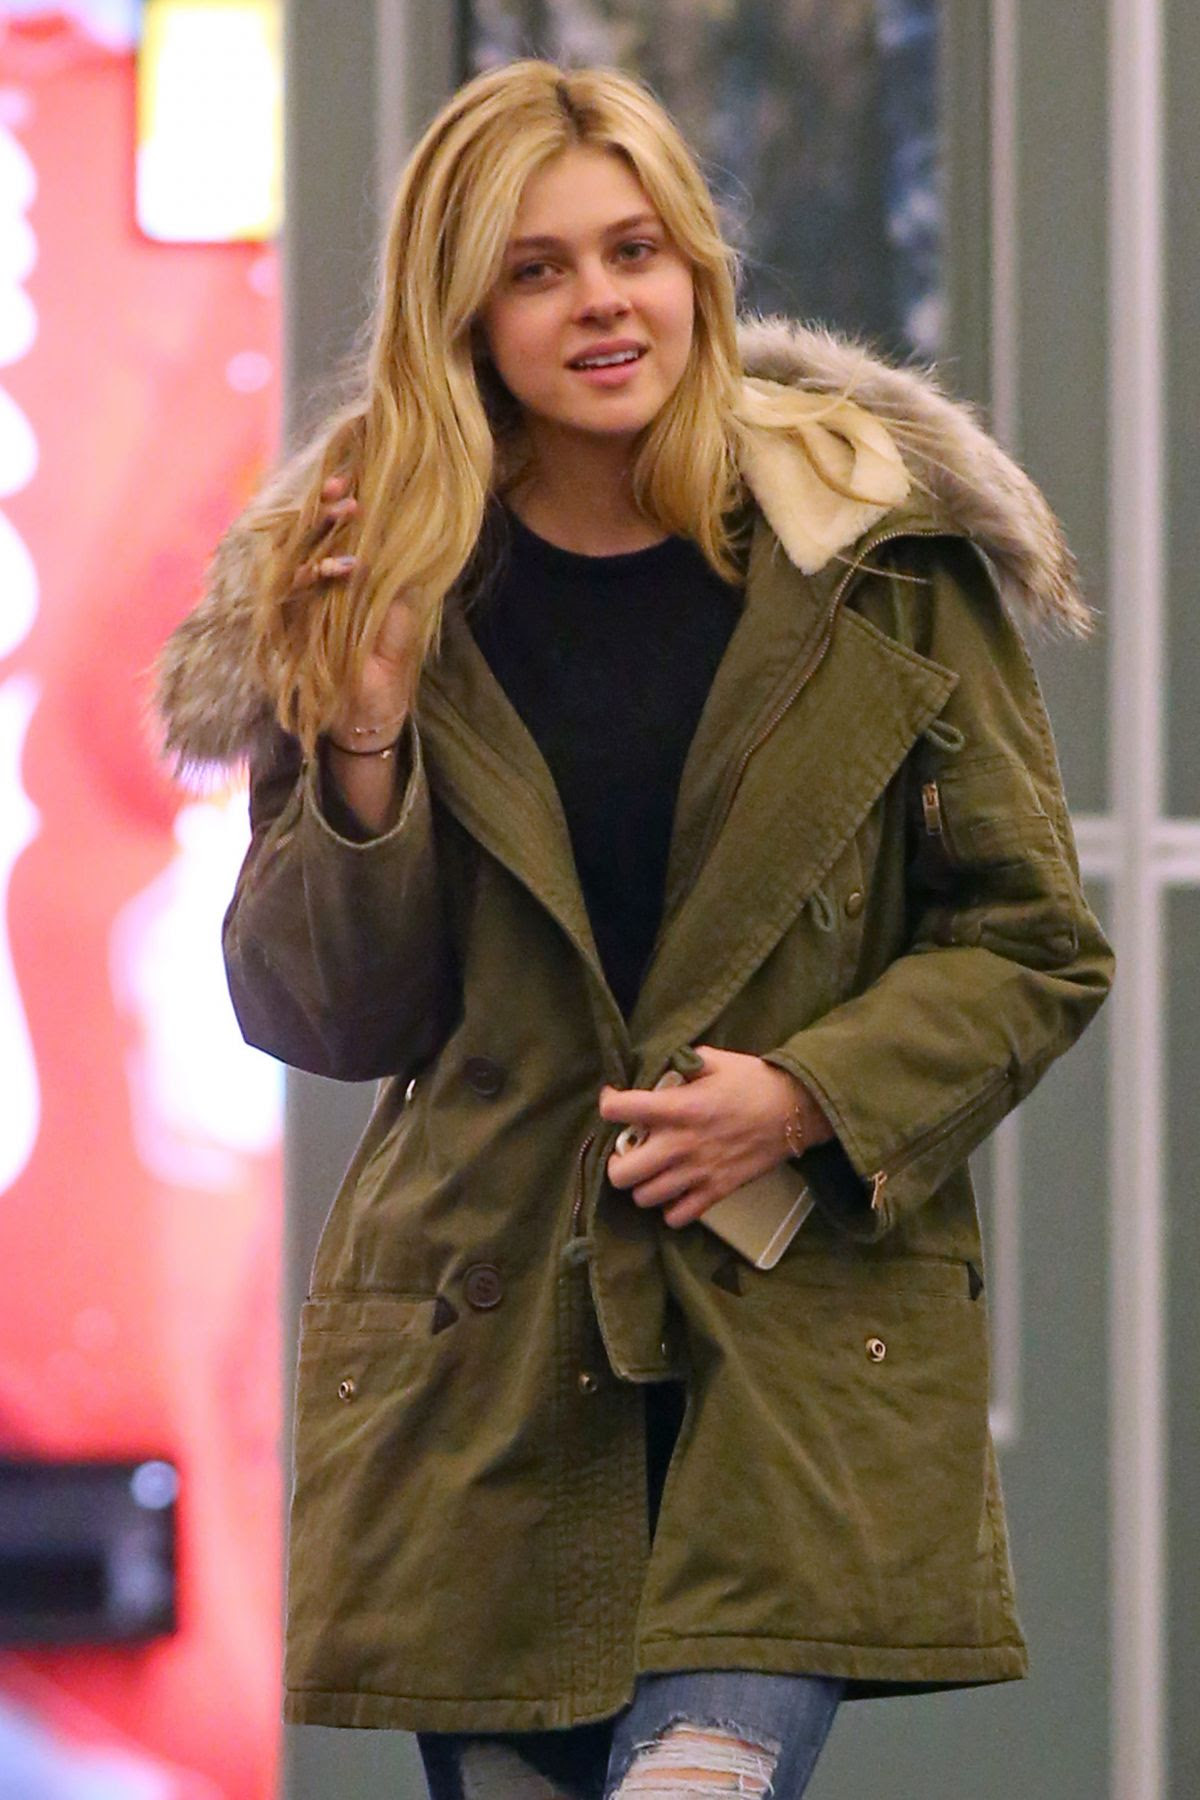 NICOLA PELTZ at Vancouver International Airport